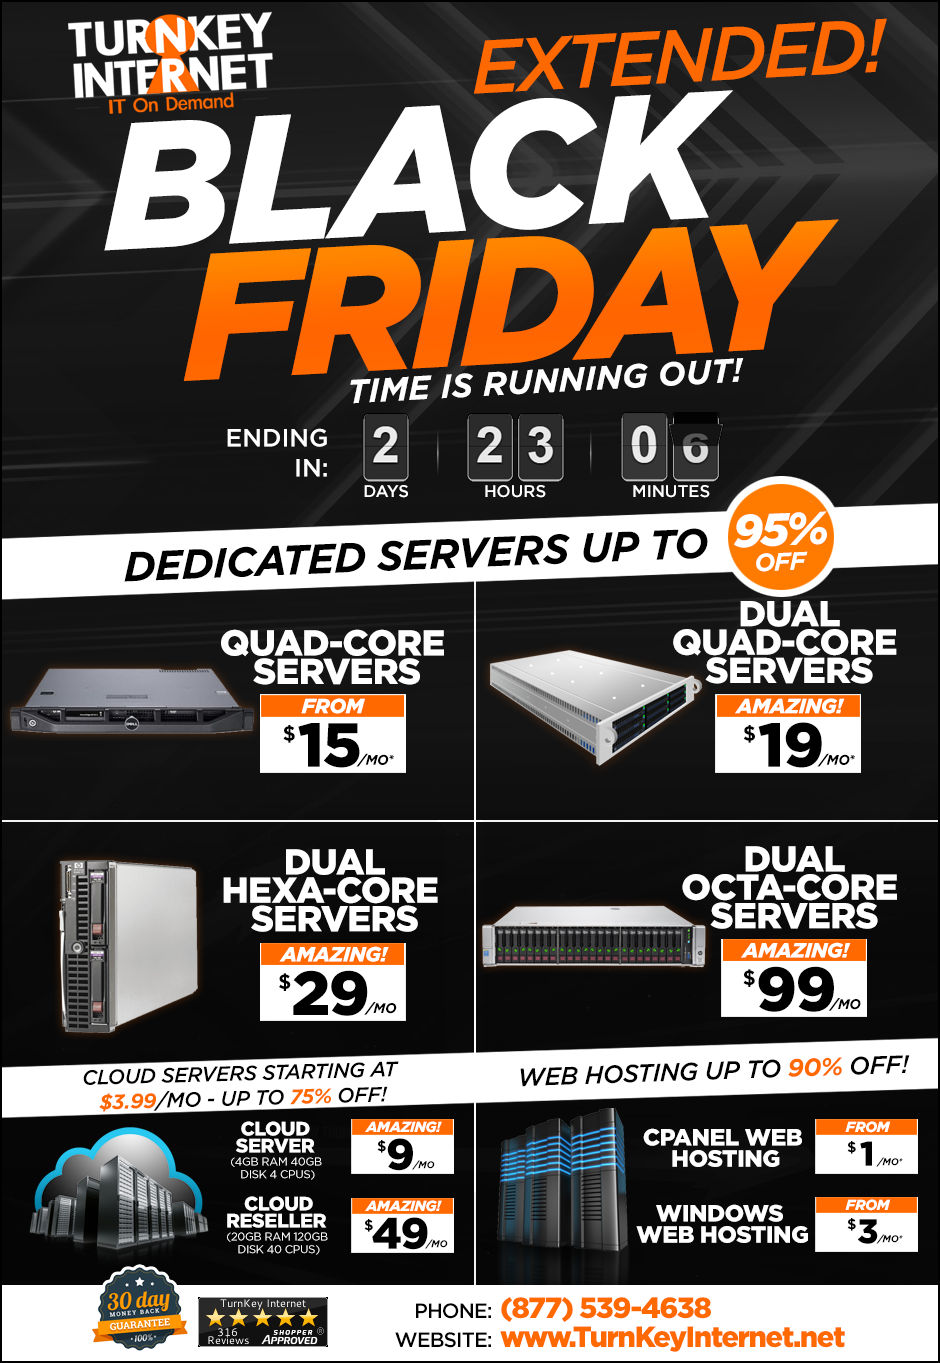 EXTENDED Black Friday Deals